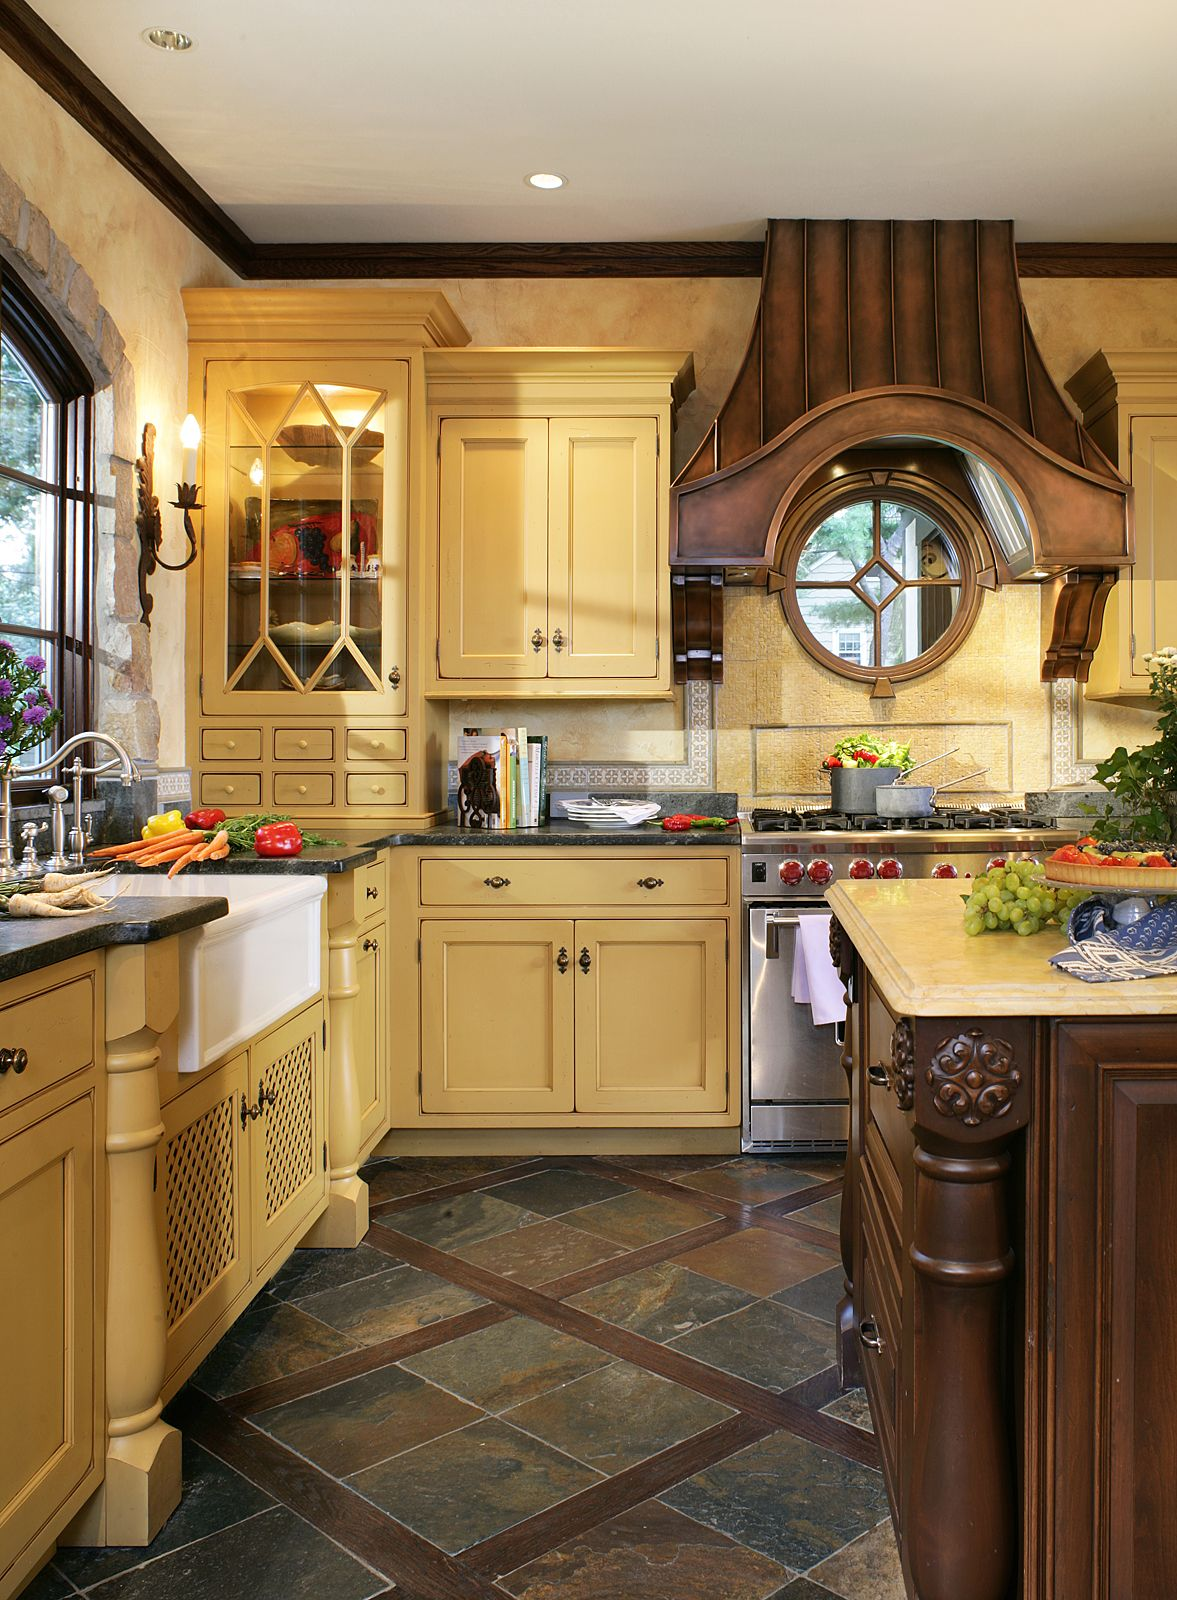 Custom Country Kitchens Timeless French Country Kitchen With Old World Ambiance Featuring